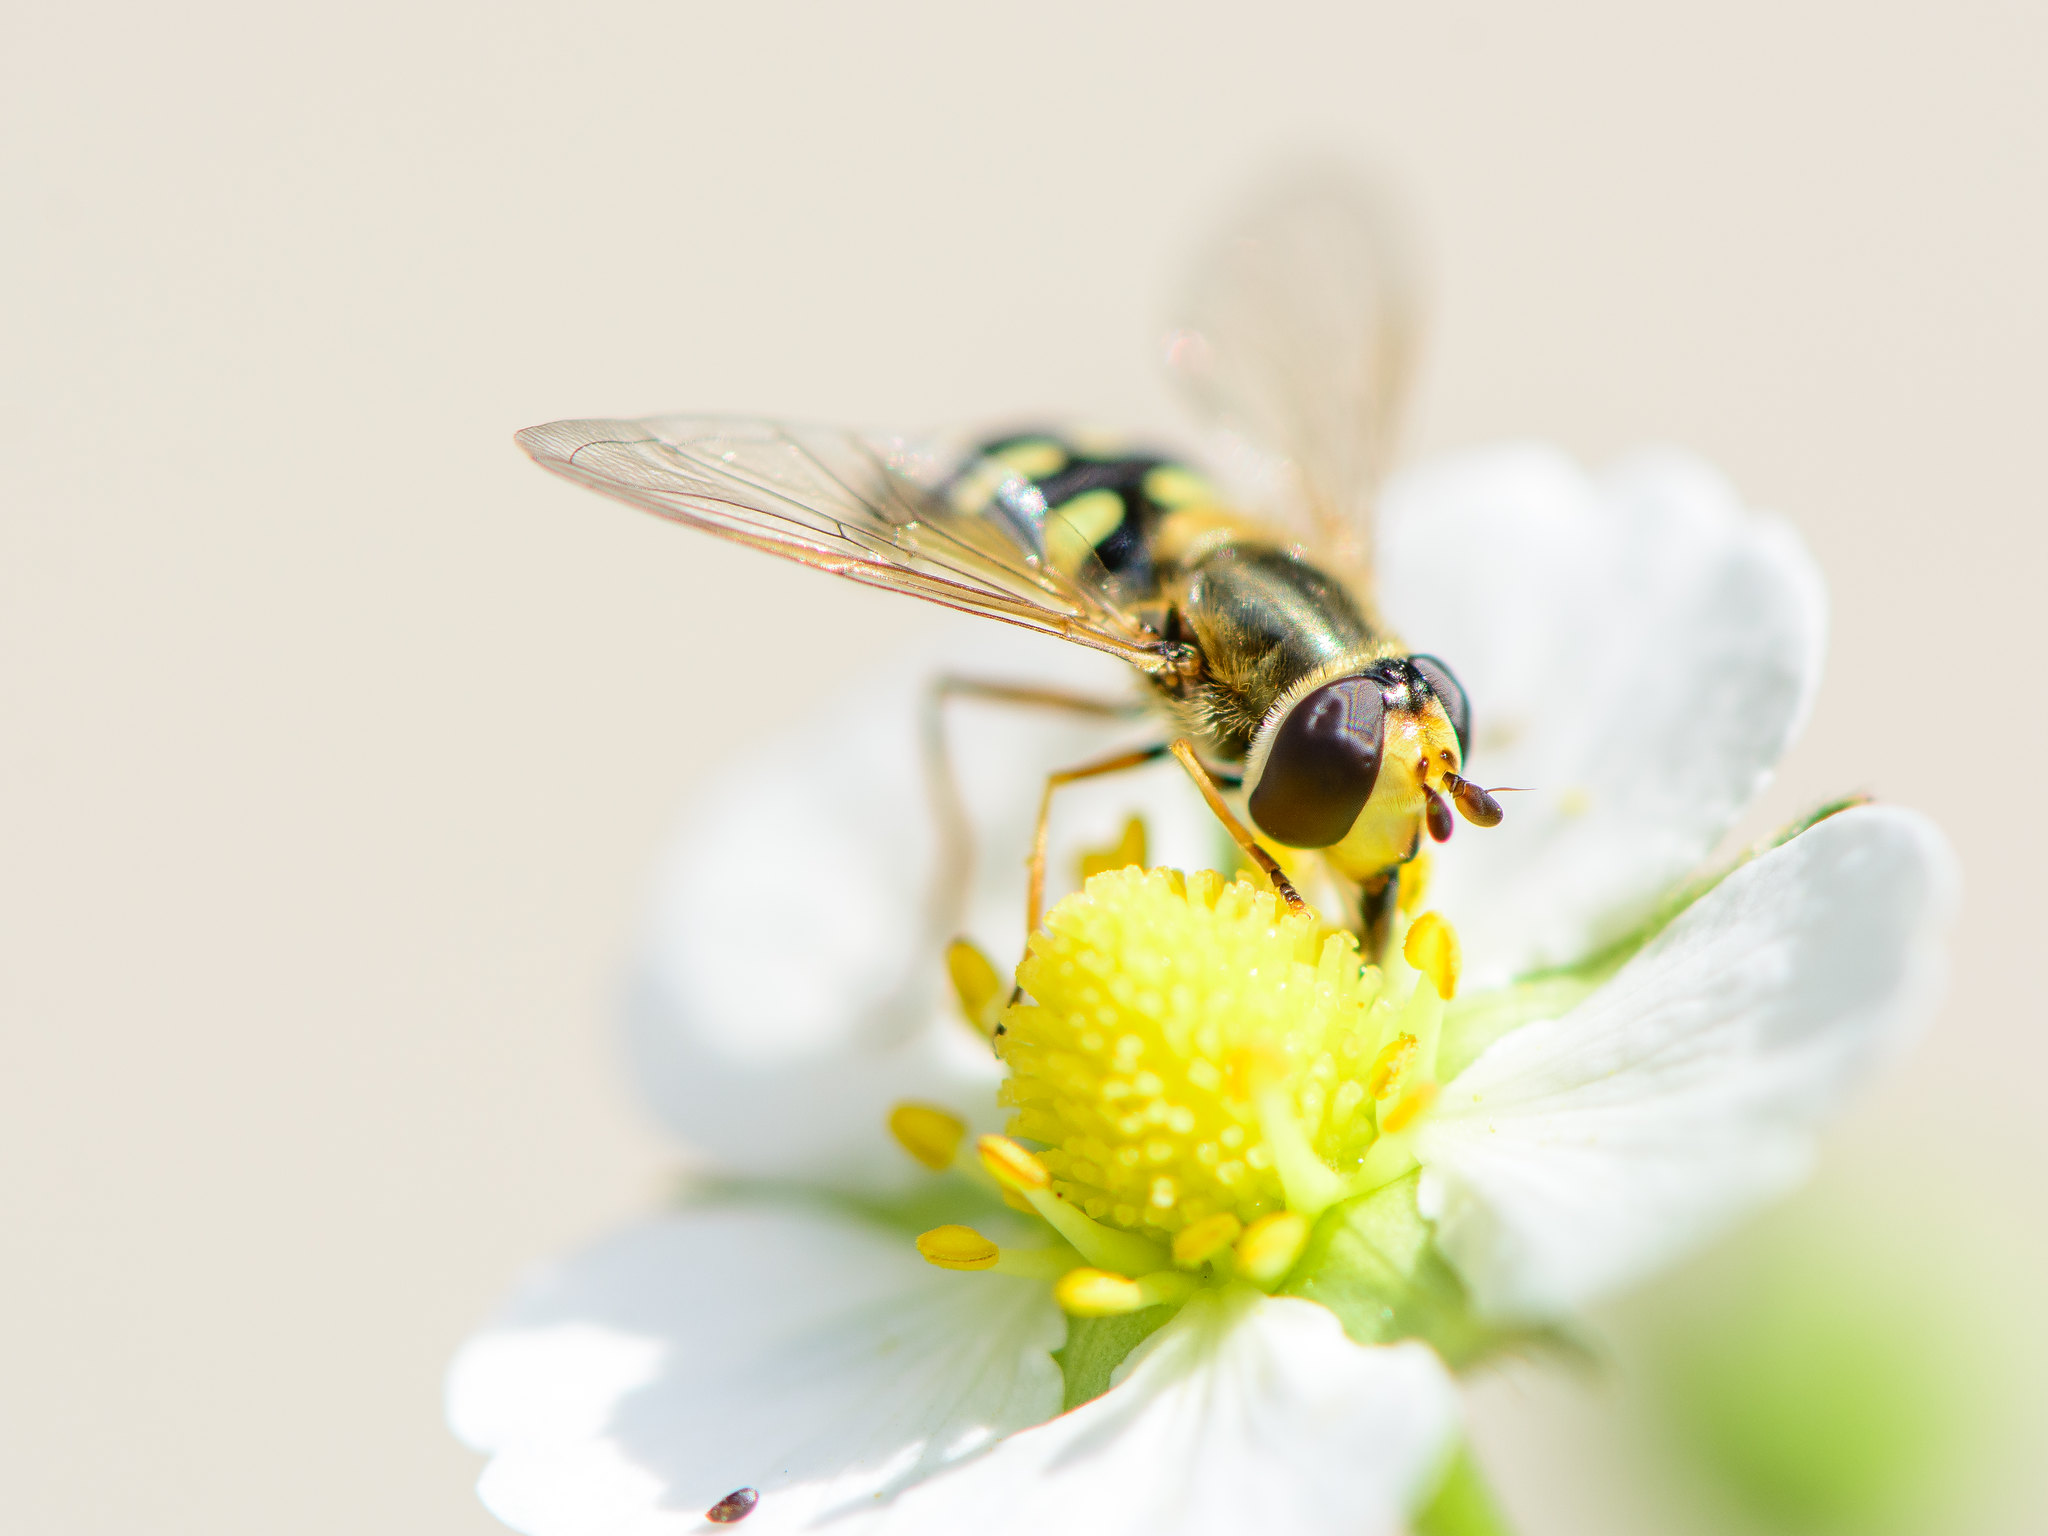 A hoverfly perched on a white flower